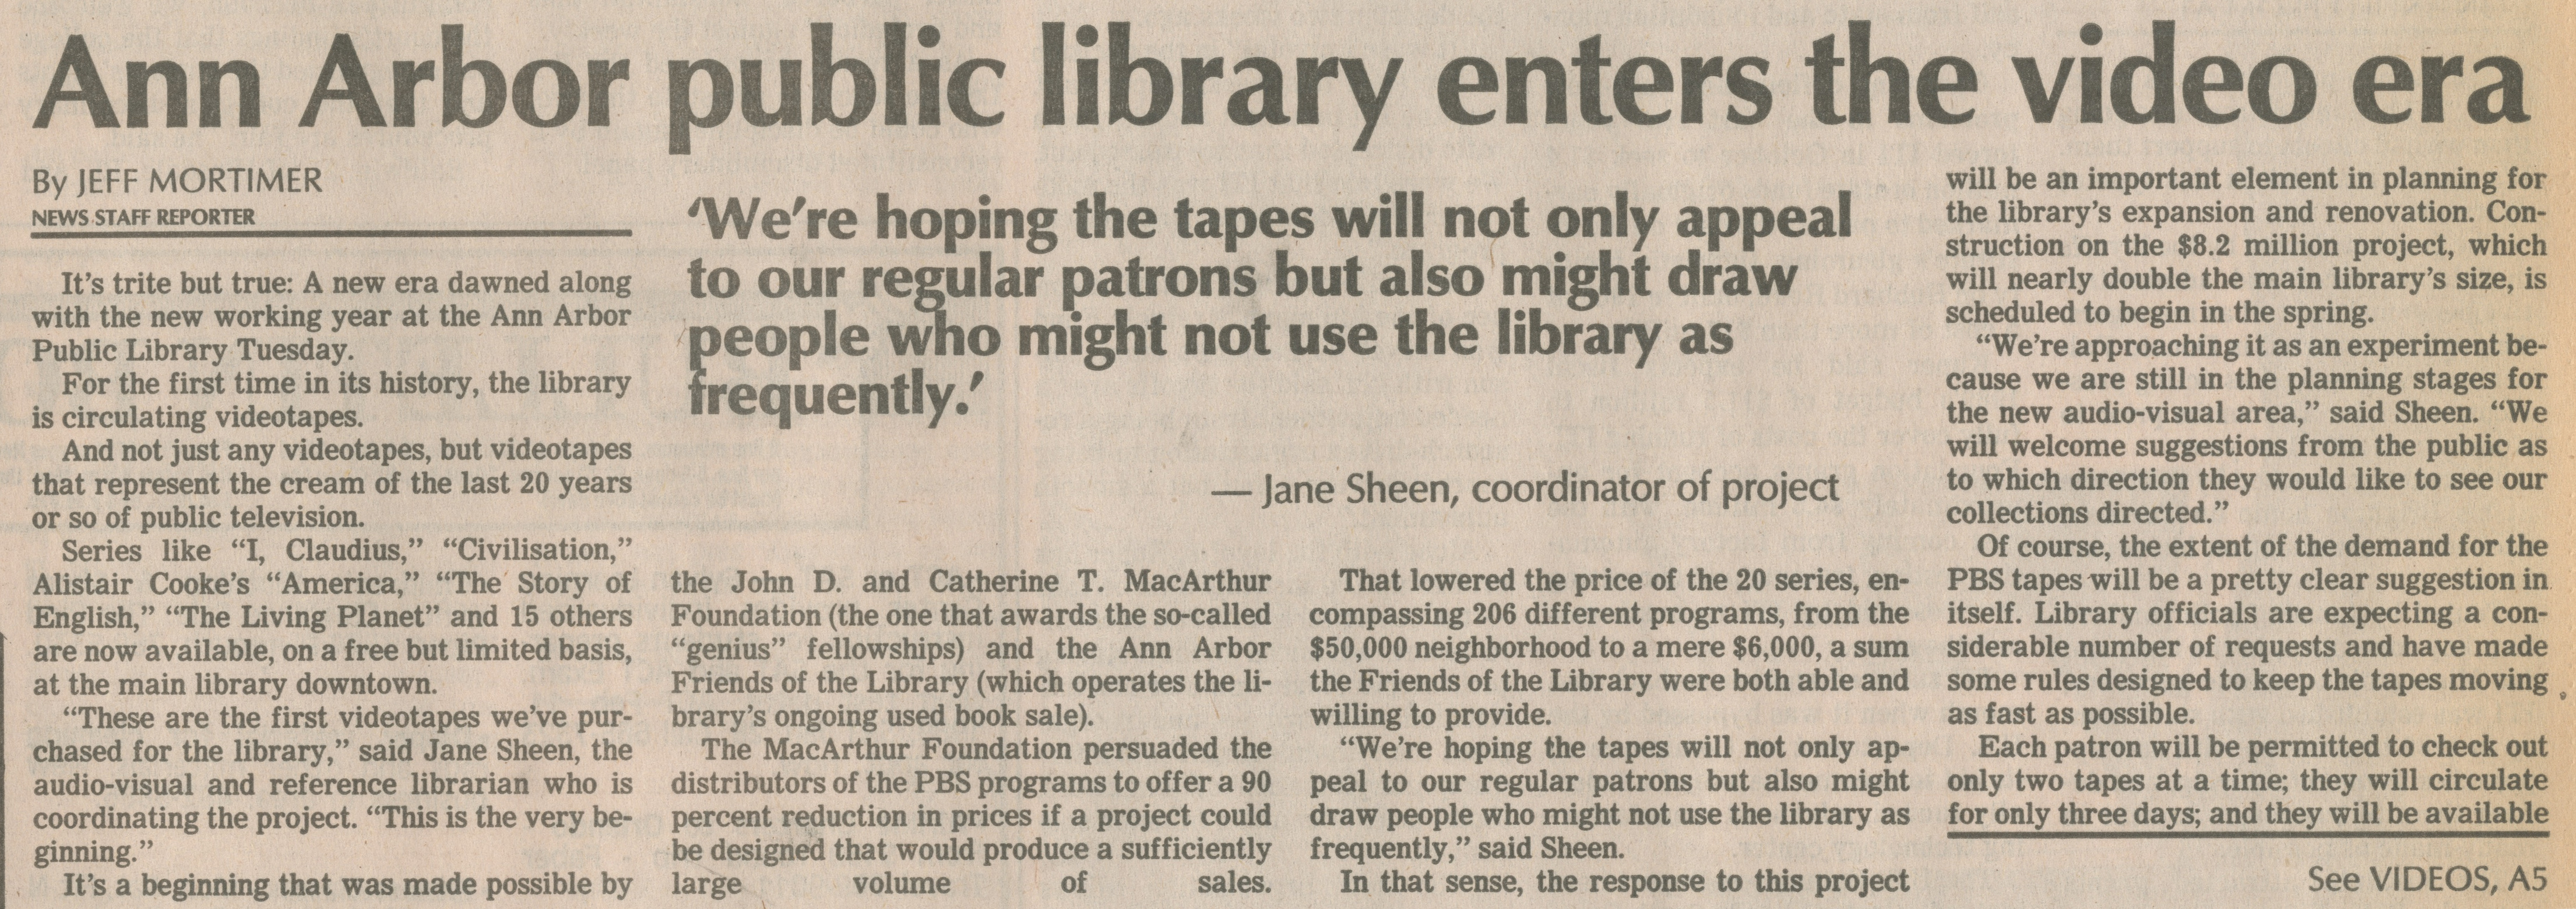 Ann Arbor Public Library Enters The Video Era image